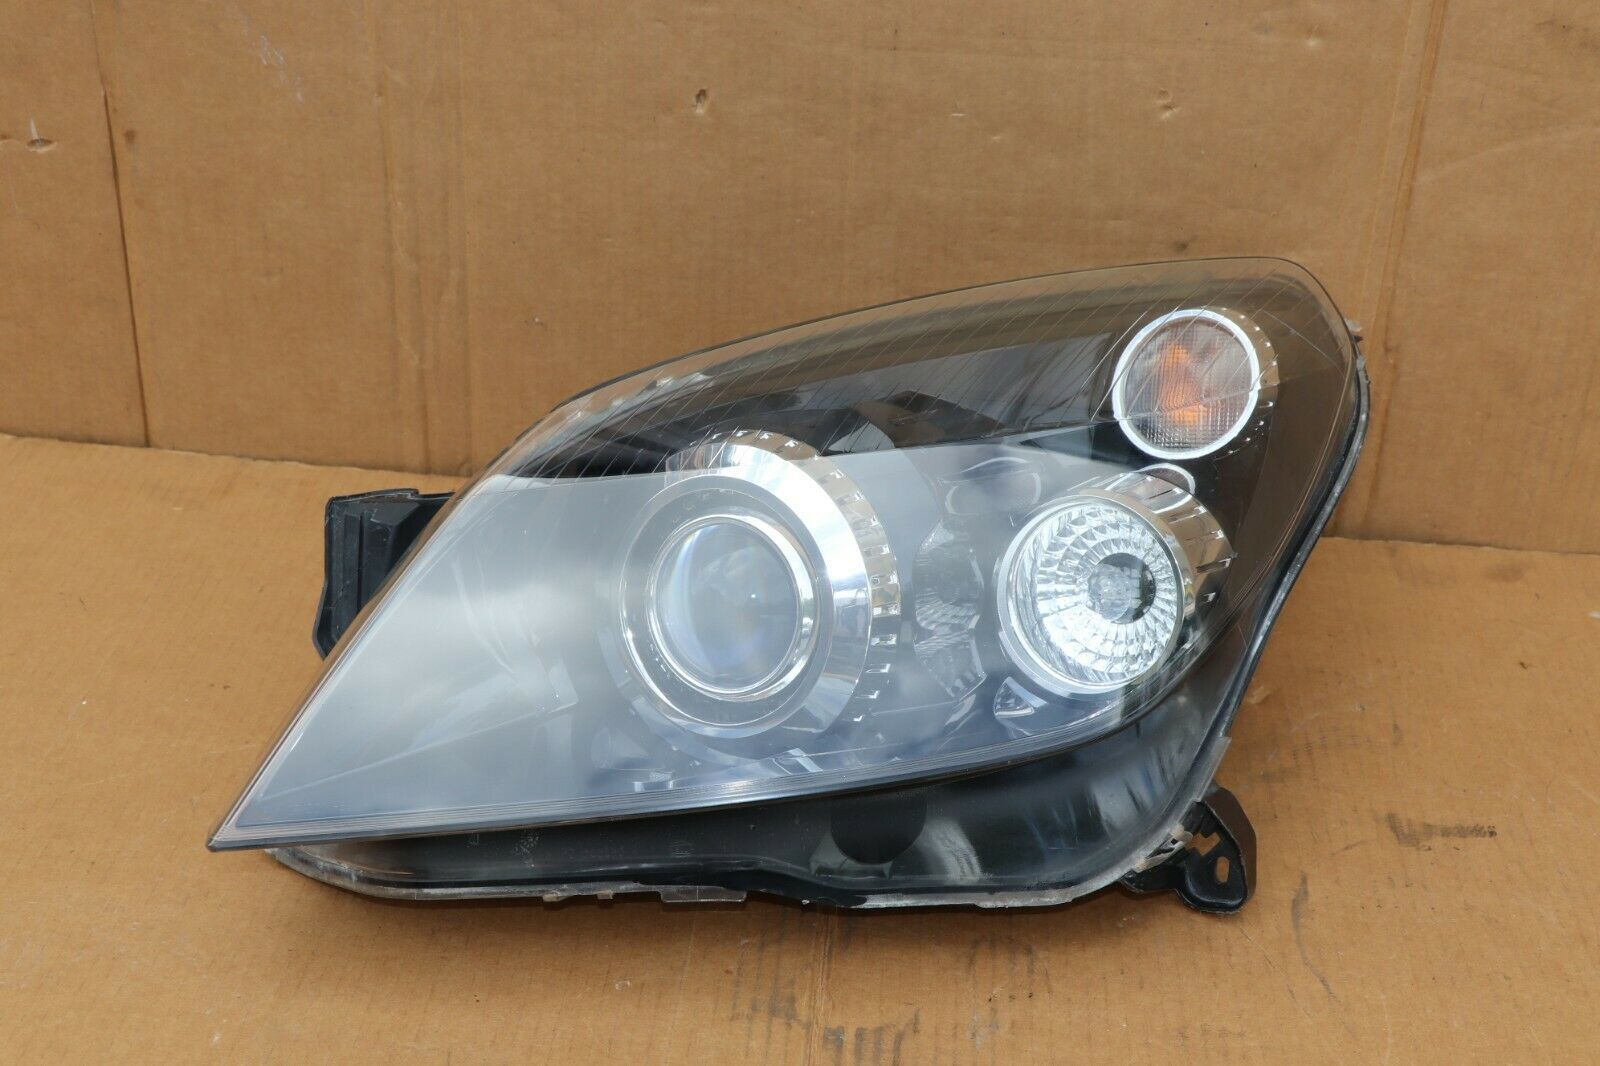 08-09 Saturn Astra Headlight Head Light Lamp Driver Left LH = POLISHED